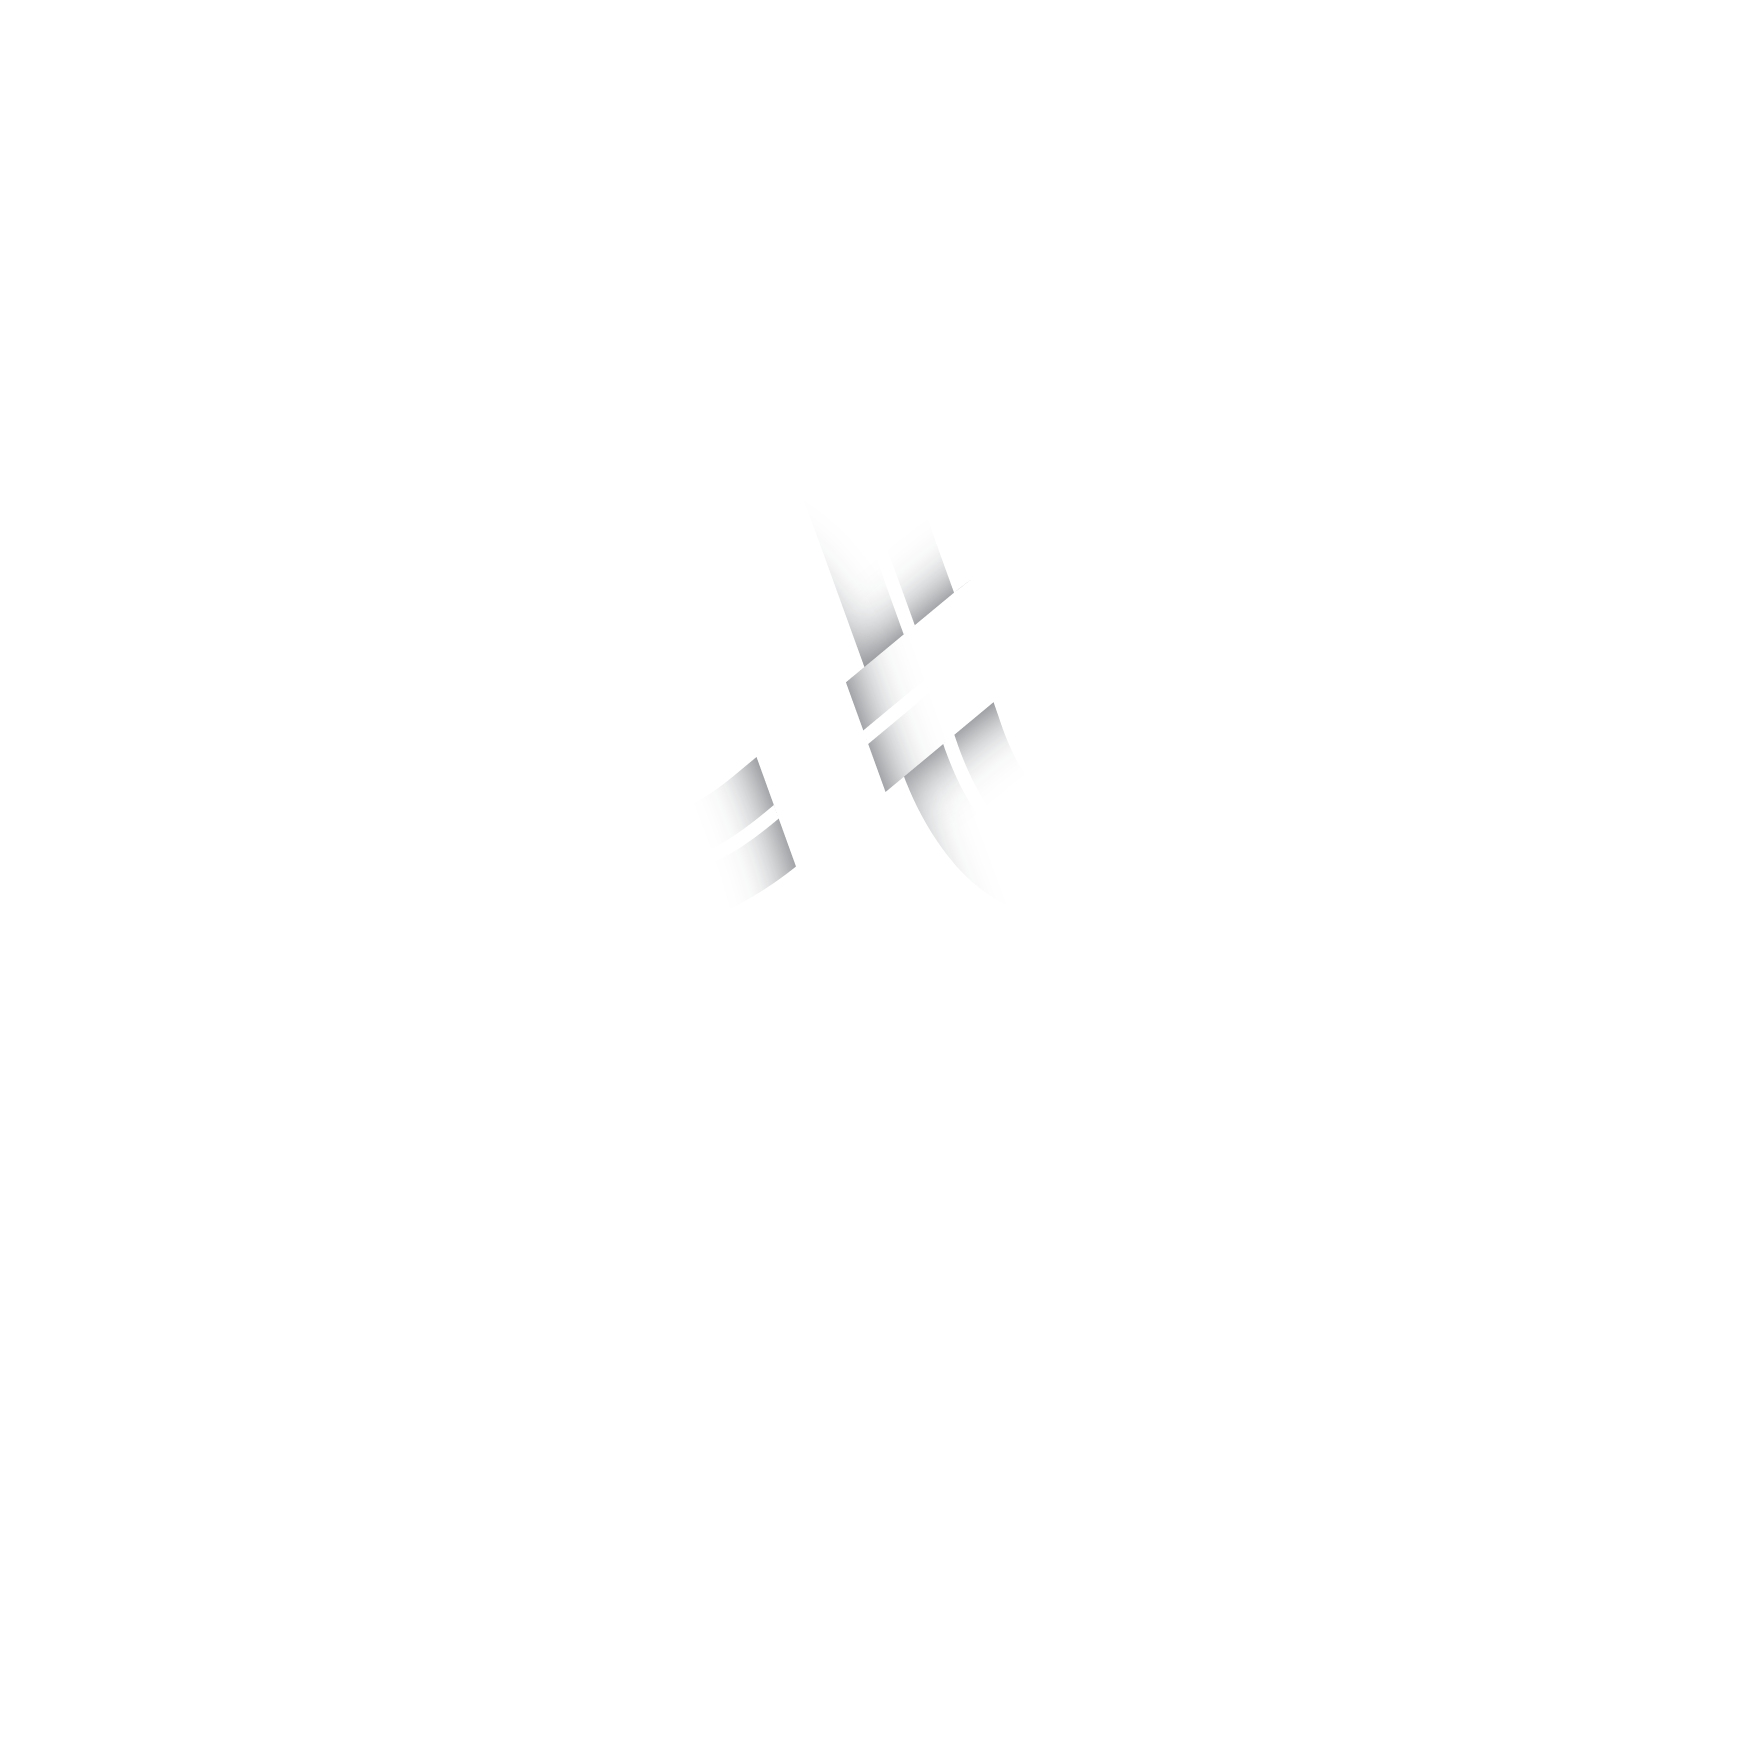 grp-basilcars-white-stacked